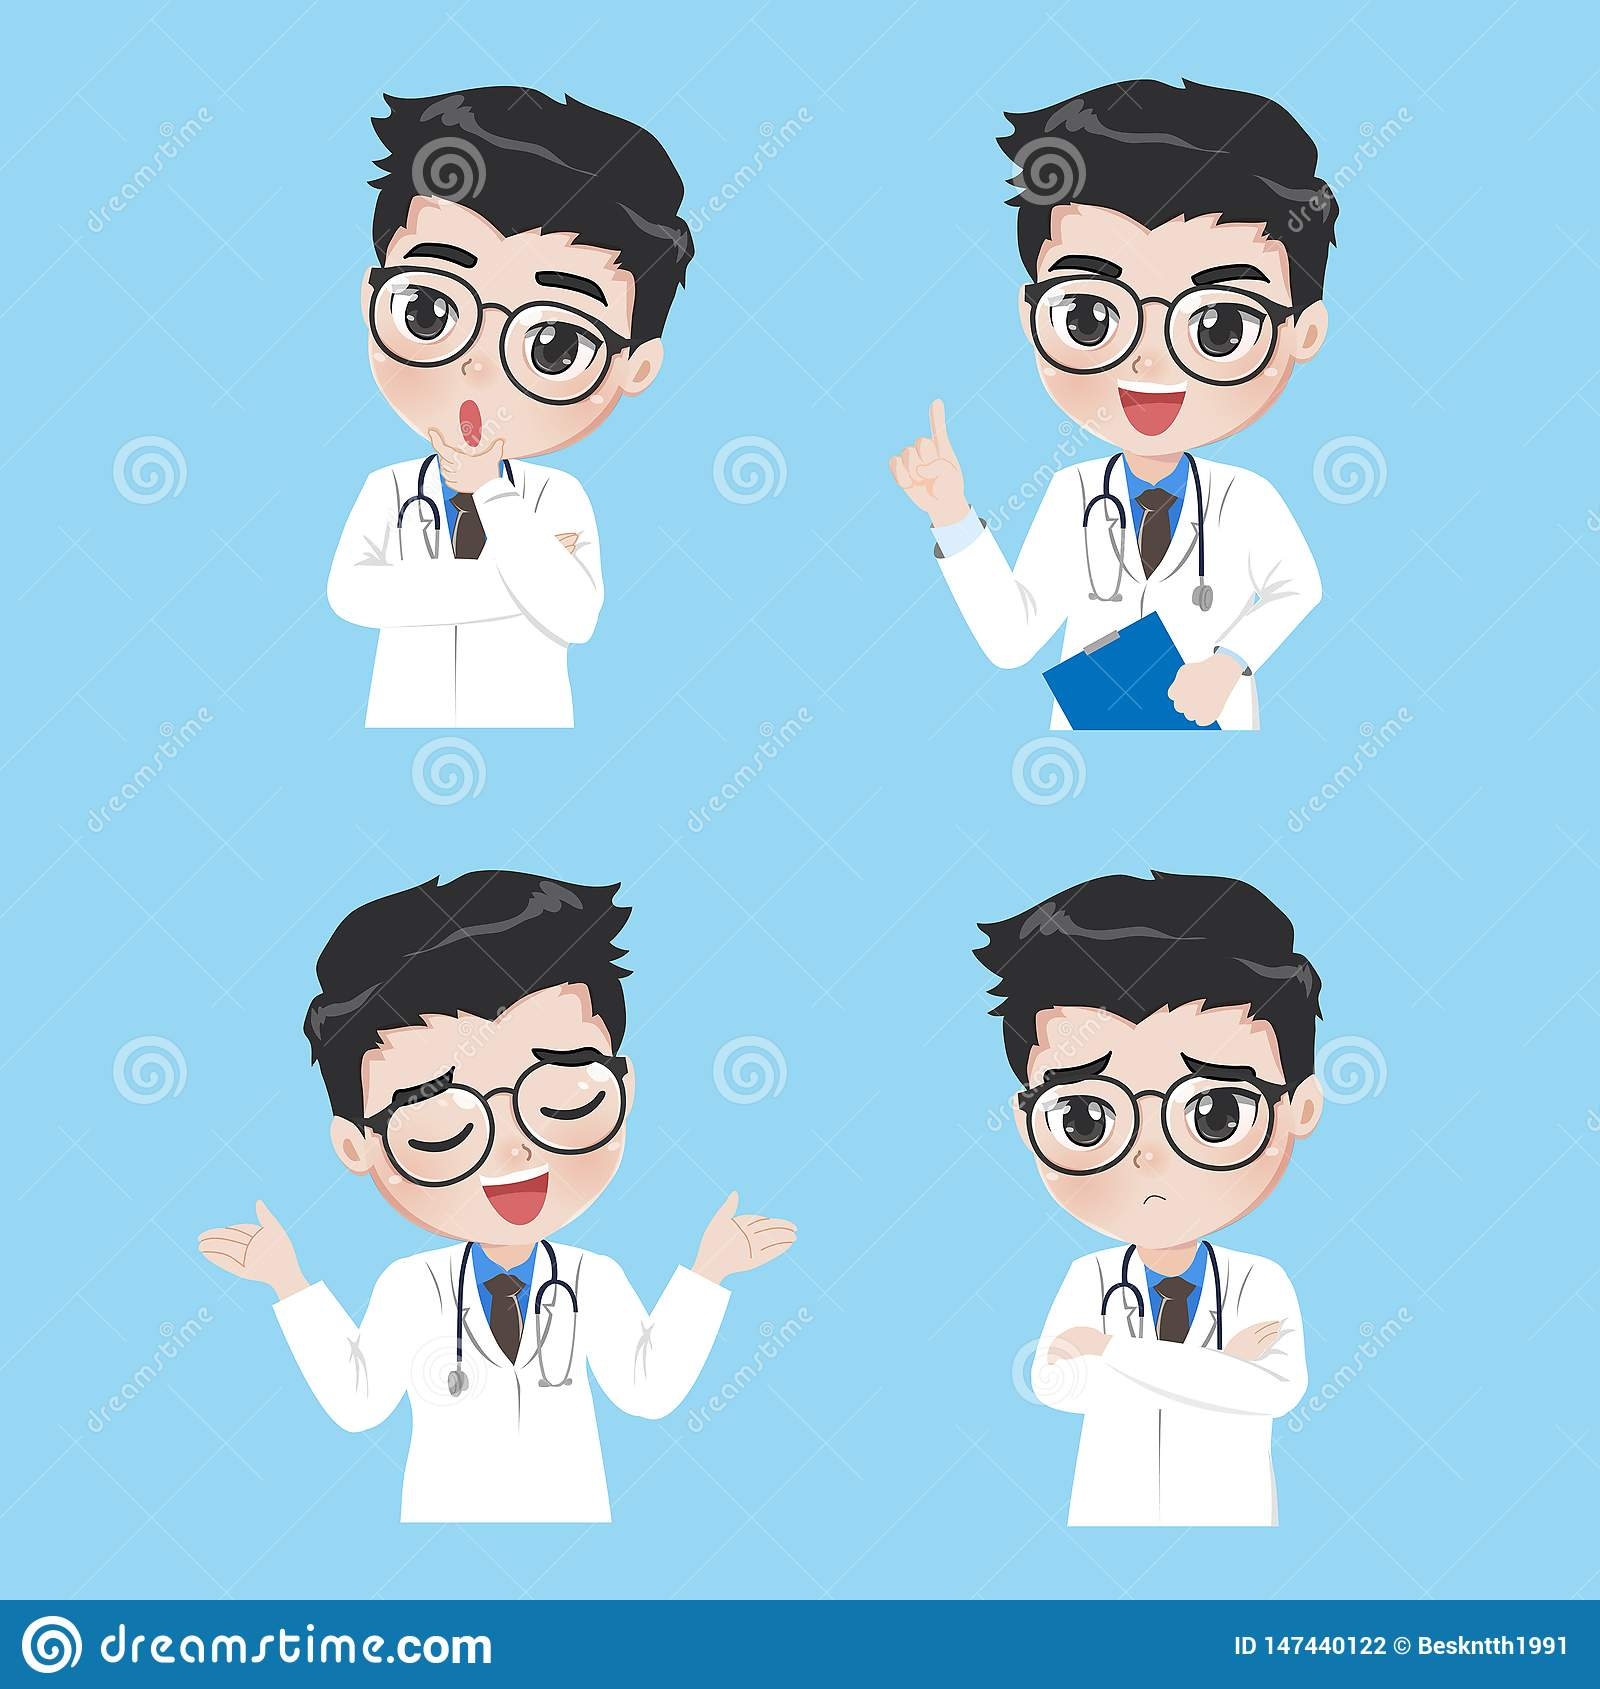 Doctor show a variety of gestures and actions in work clothes